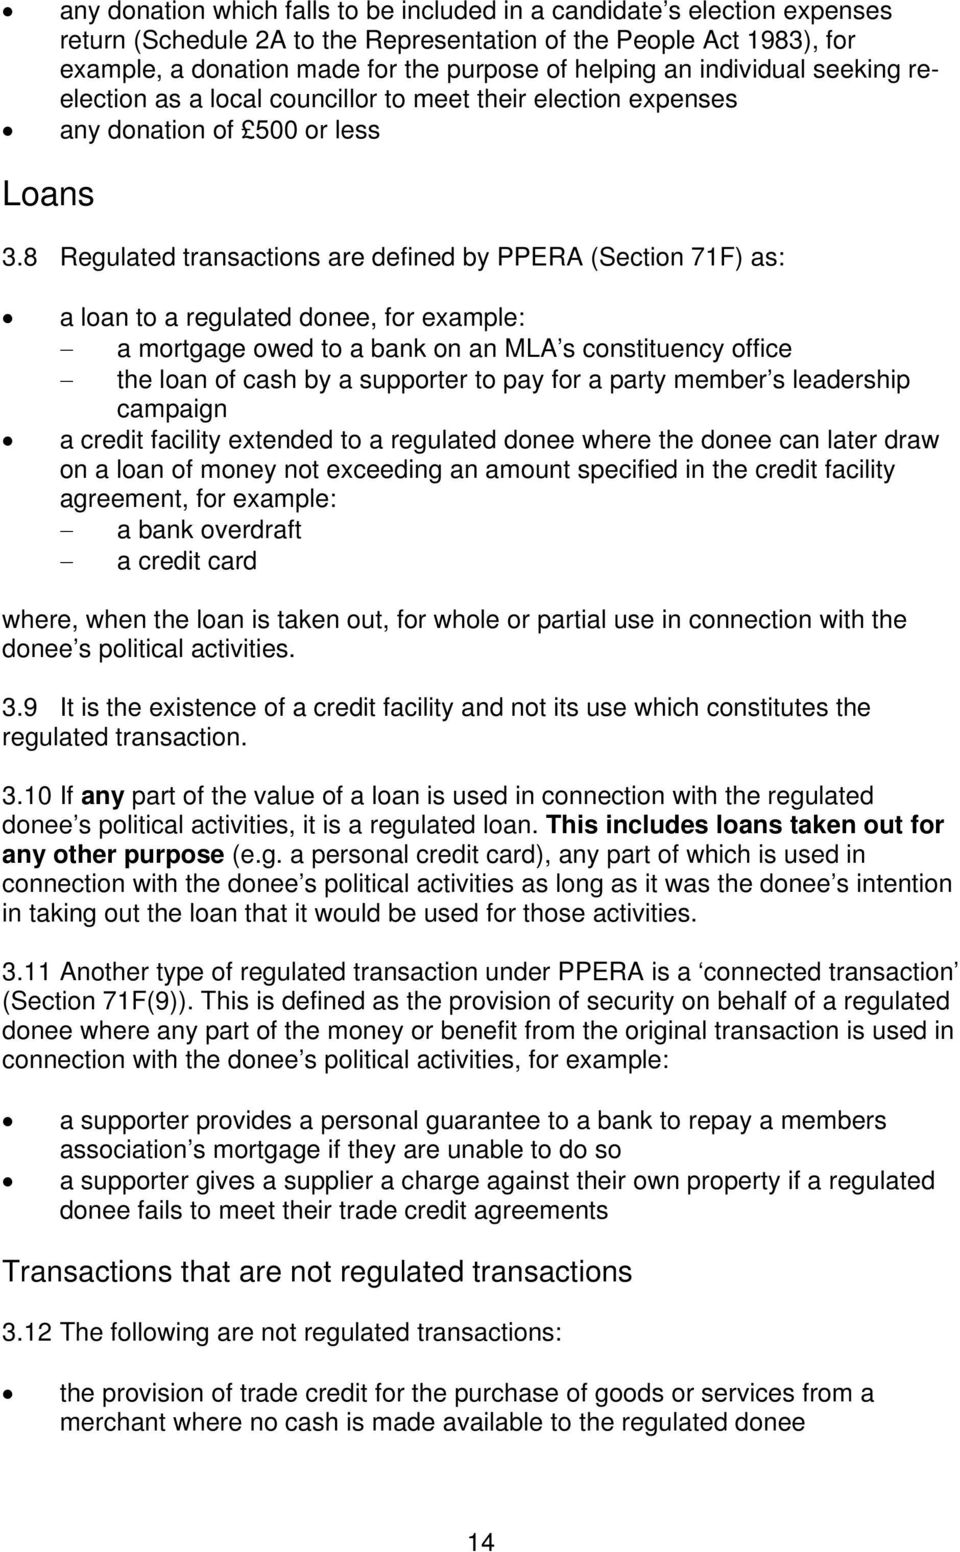 8 Regulated transactions are defined by PPERA (Section 71F) as: a loan to a regulated donee, for example: a mortgage owed to a bank on an MLA s constituency office the loan of cash by a supporter to